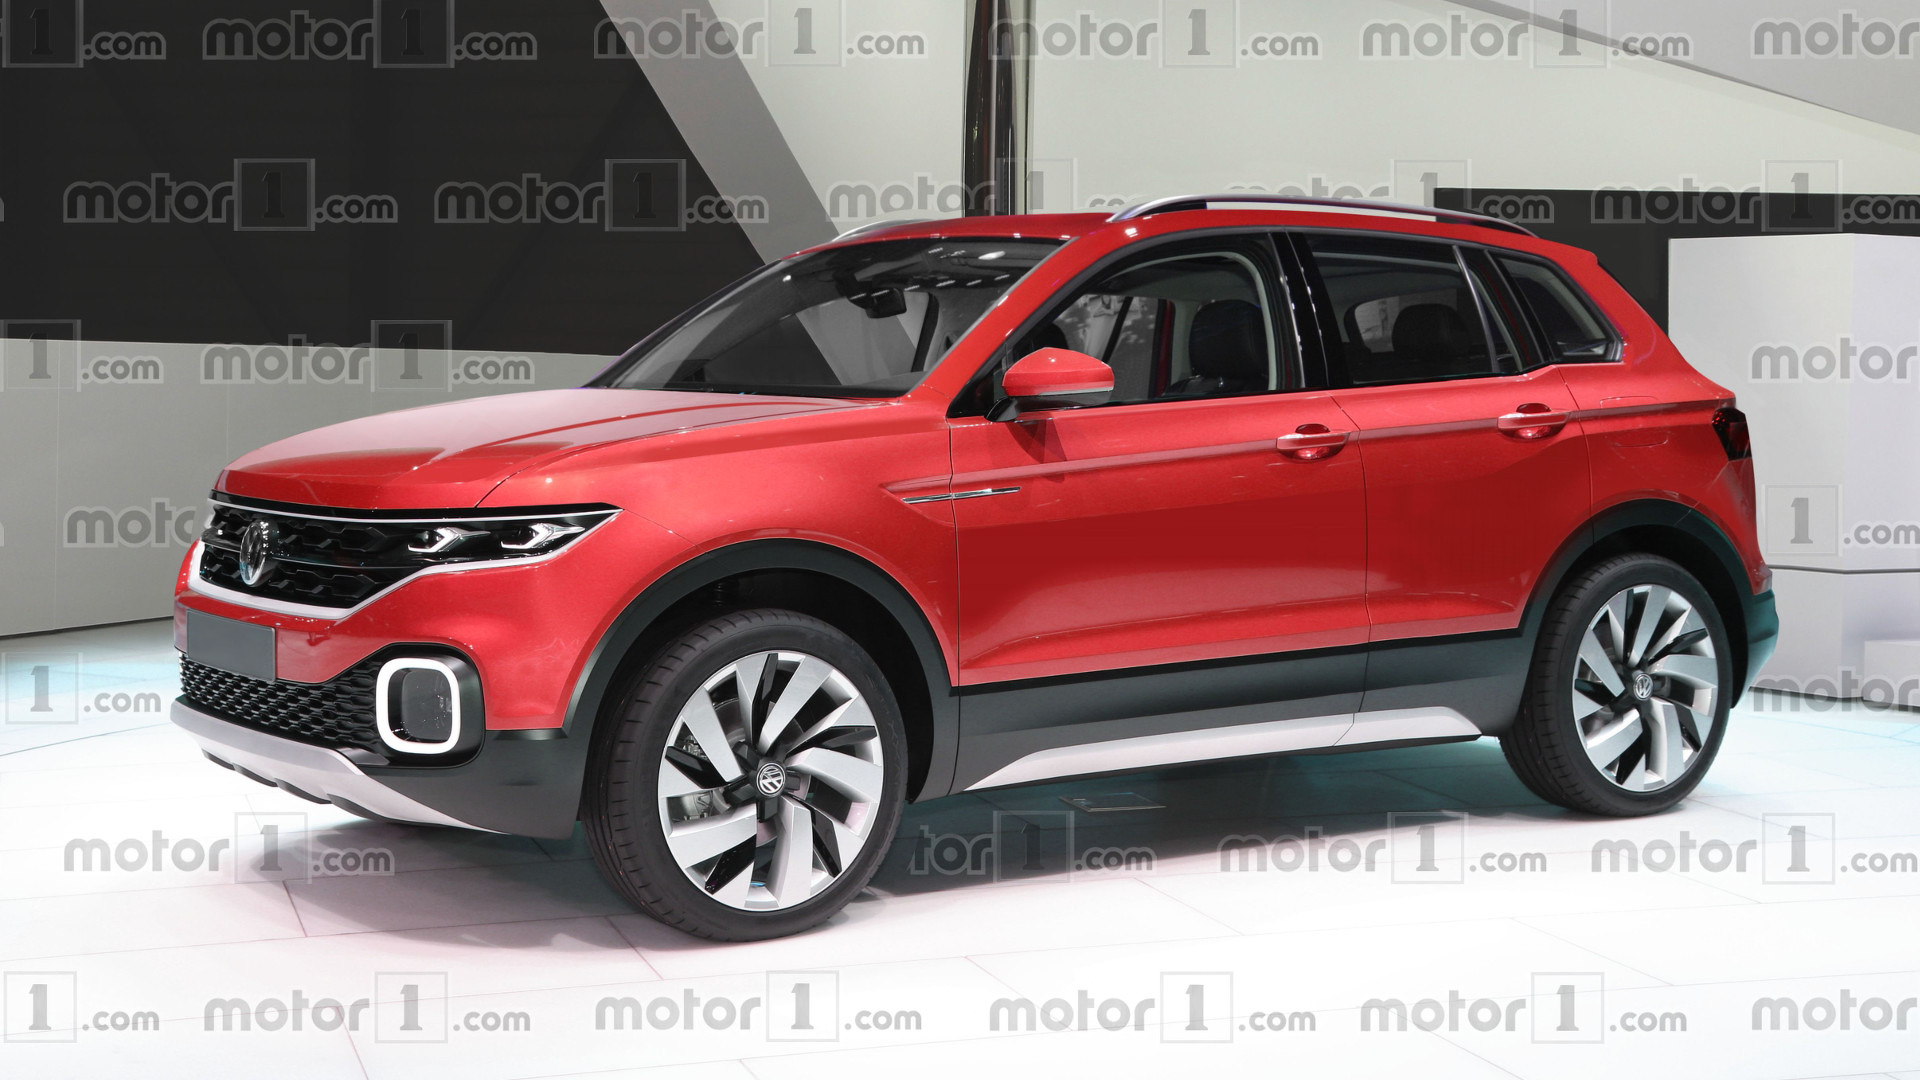 Vw Suv Polo >> This Is What Vw S New Polo Based Crossover Could Look Like